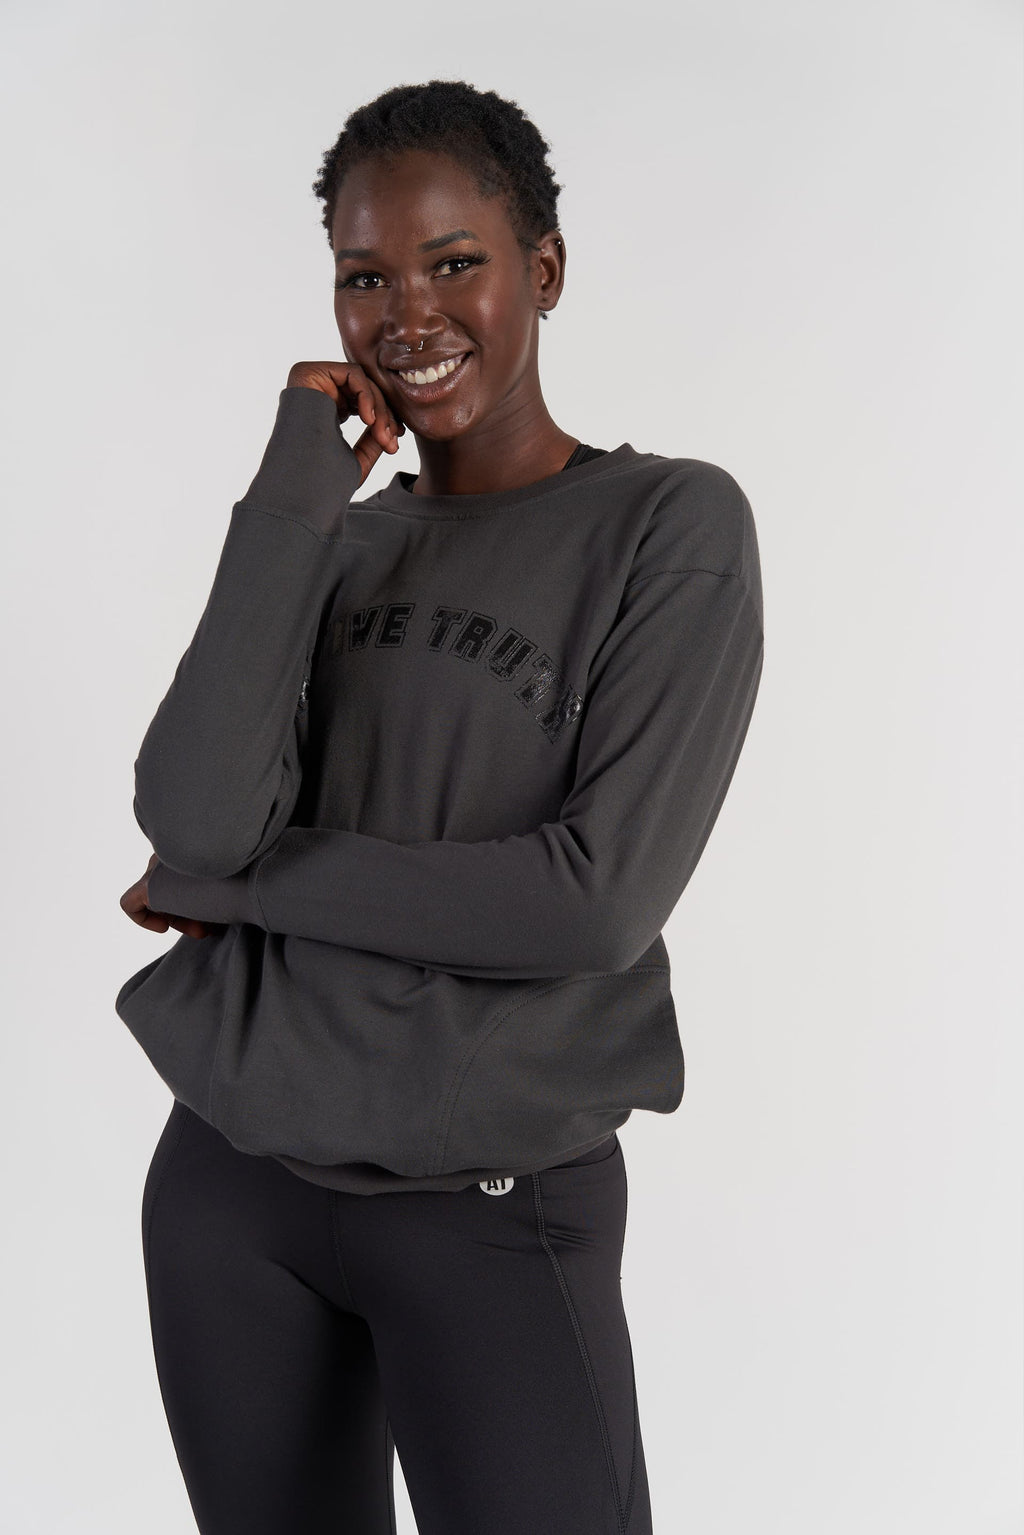 womens-activewear-jumper-gym-top-grey-small-side